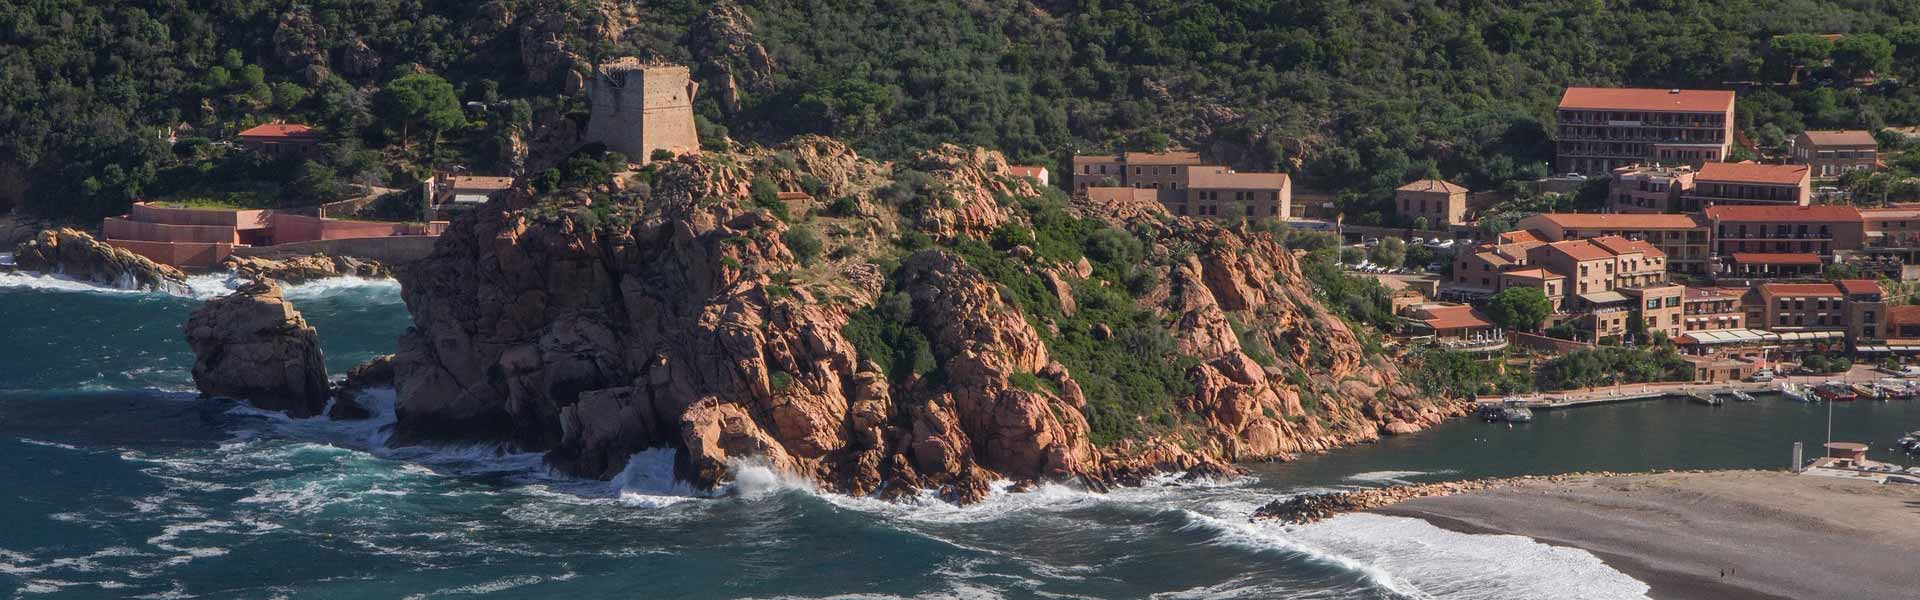 Carte Corse Porto Ota.Porto At A Cycling And Walking Distance From Corsica S Wonders